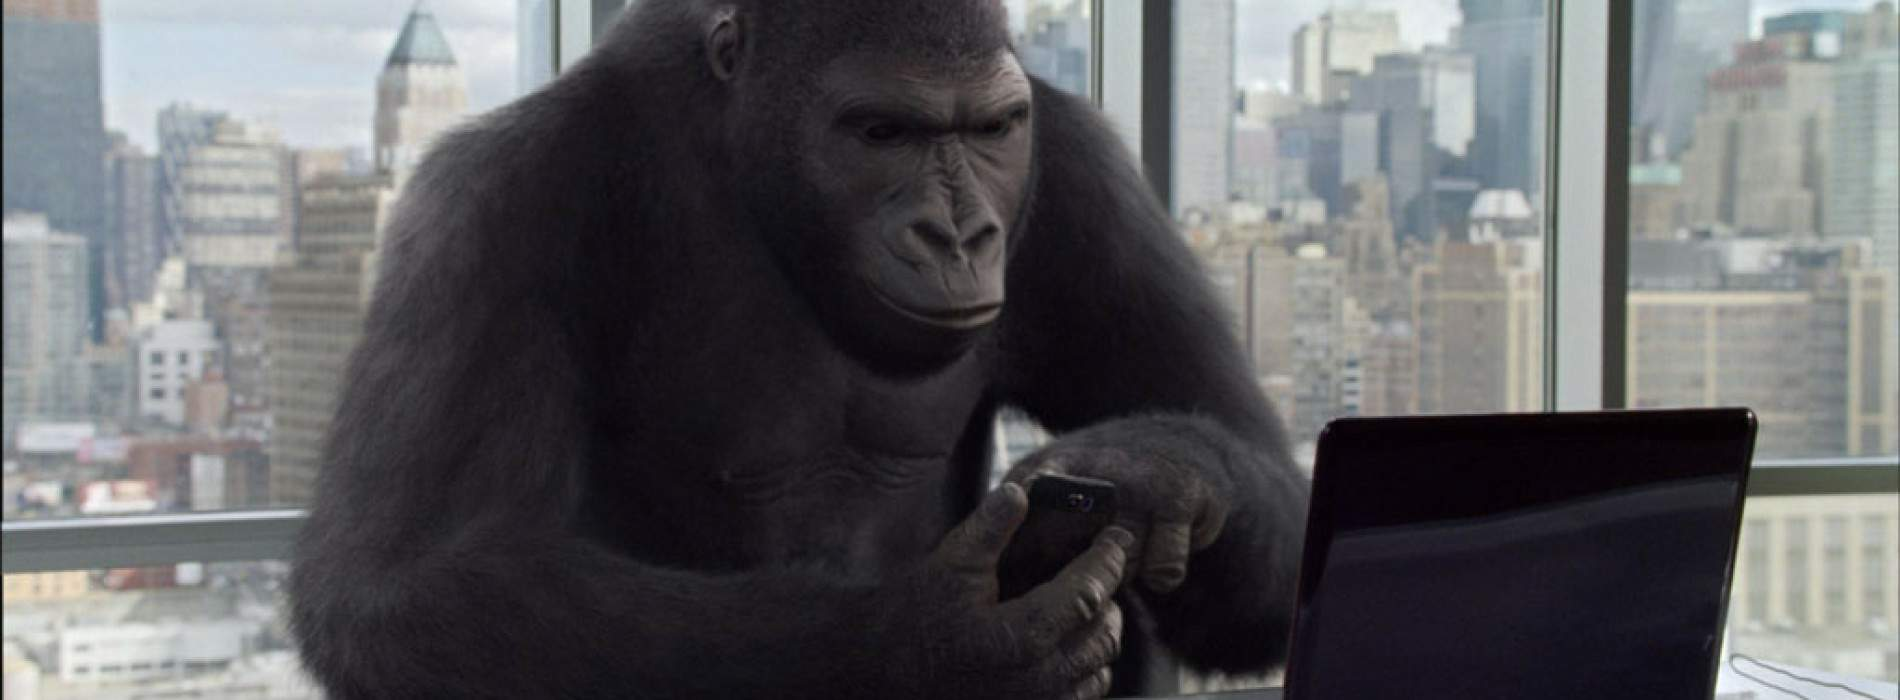 Antimicrobial Corning Gorilla Glass, pantallas sin bacterias